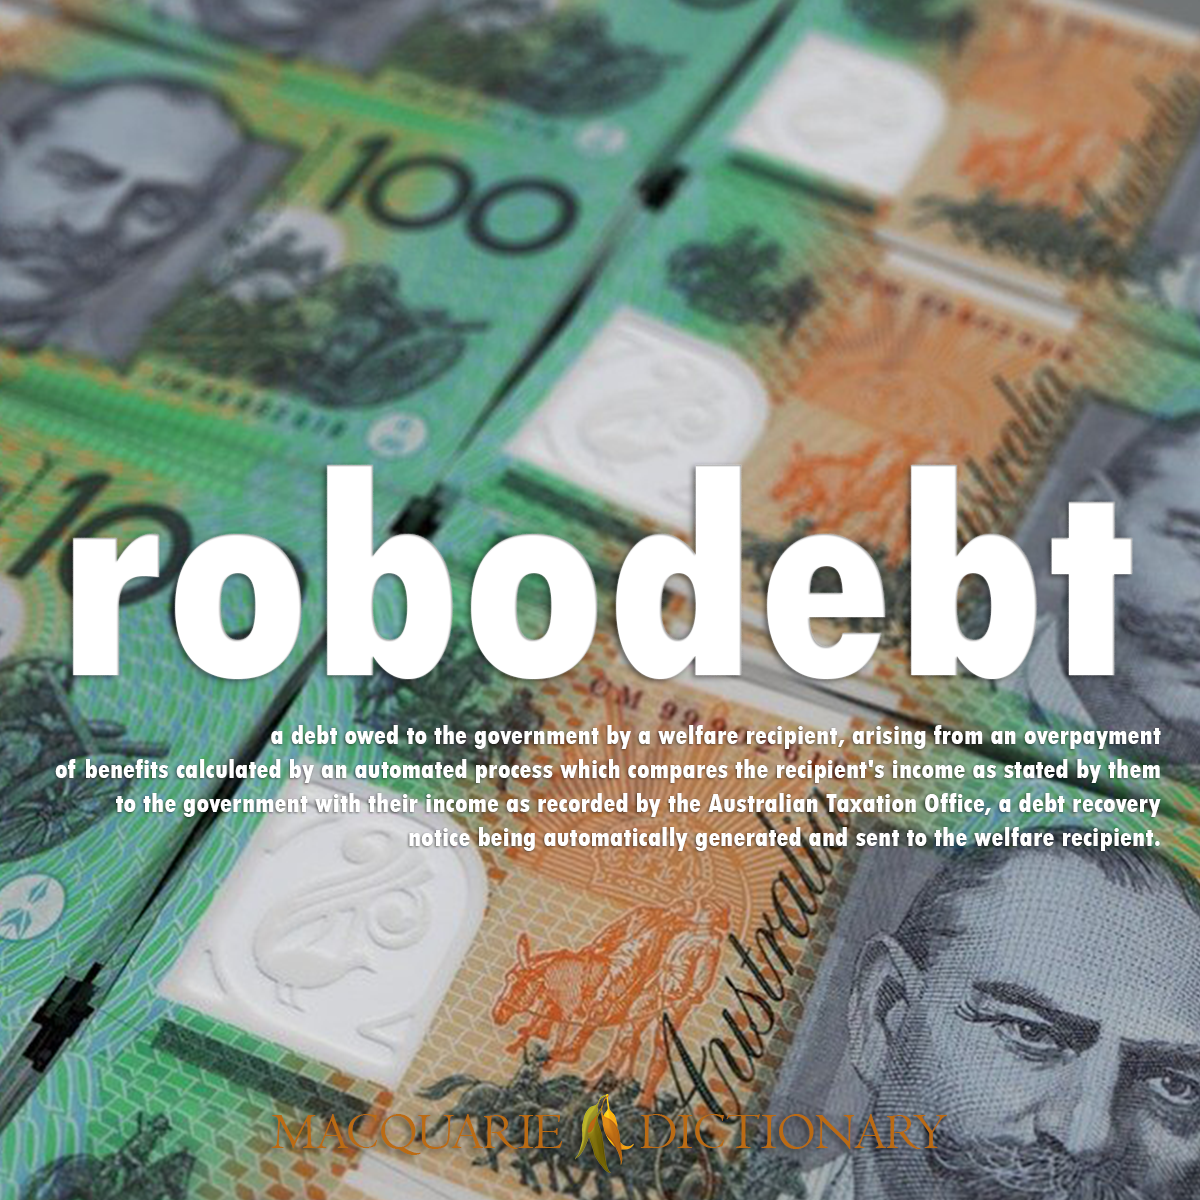 Image of Macquarie Dictionary Word of the Year robodebt a debt owed to the government by a welfare recipient, arising from an overpayment of benefits calculated by an automated process which compares the recipient's income as stated by them to the government with their income as recorded by the Australian Taxation Office, a debt recovery notice being automatically generated and sent to the welfare recipient.